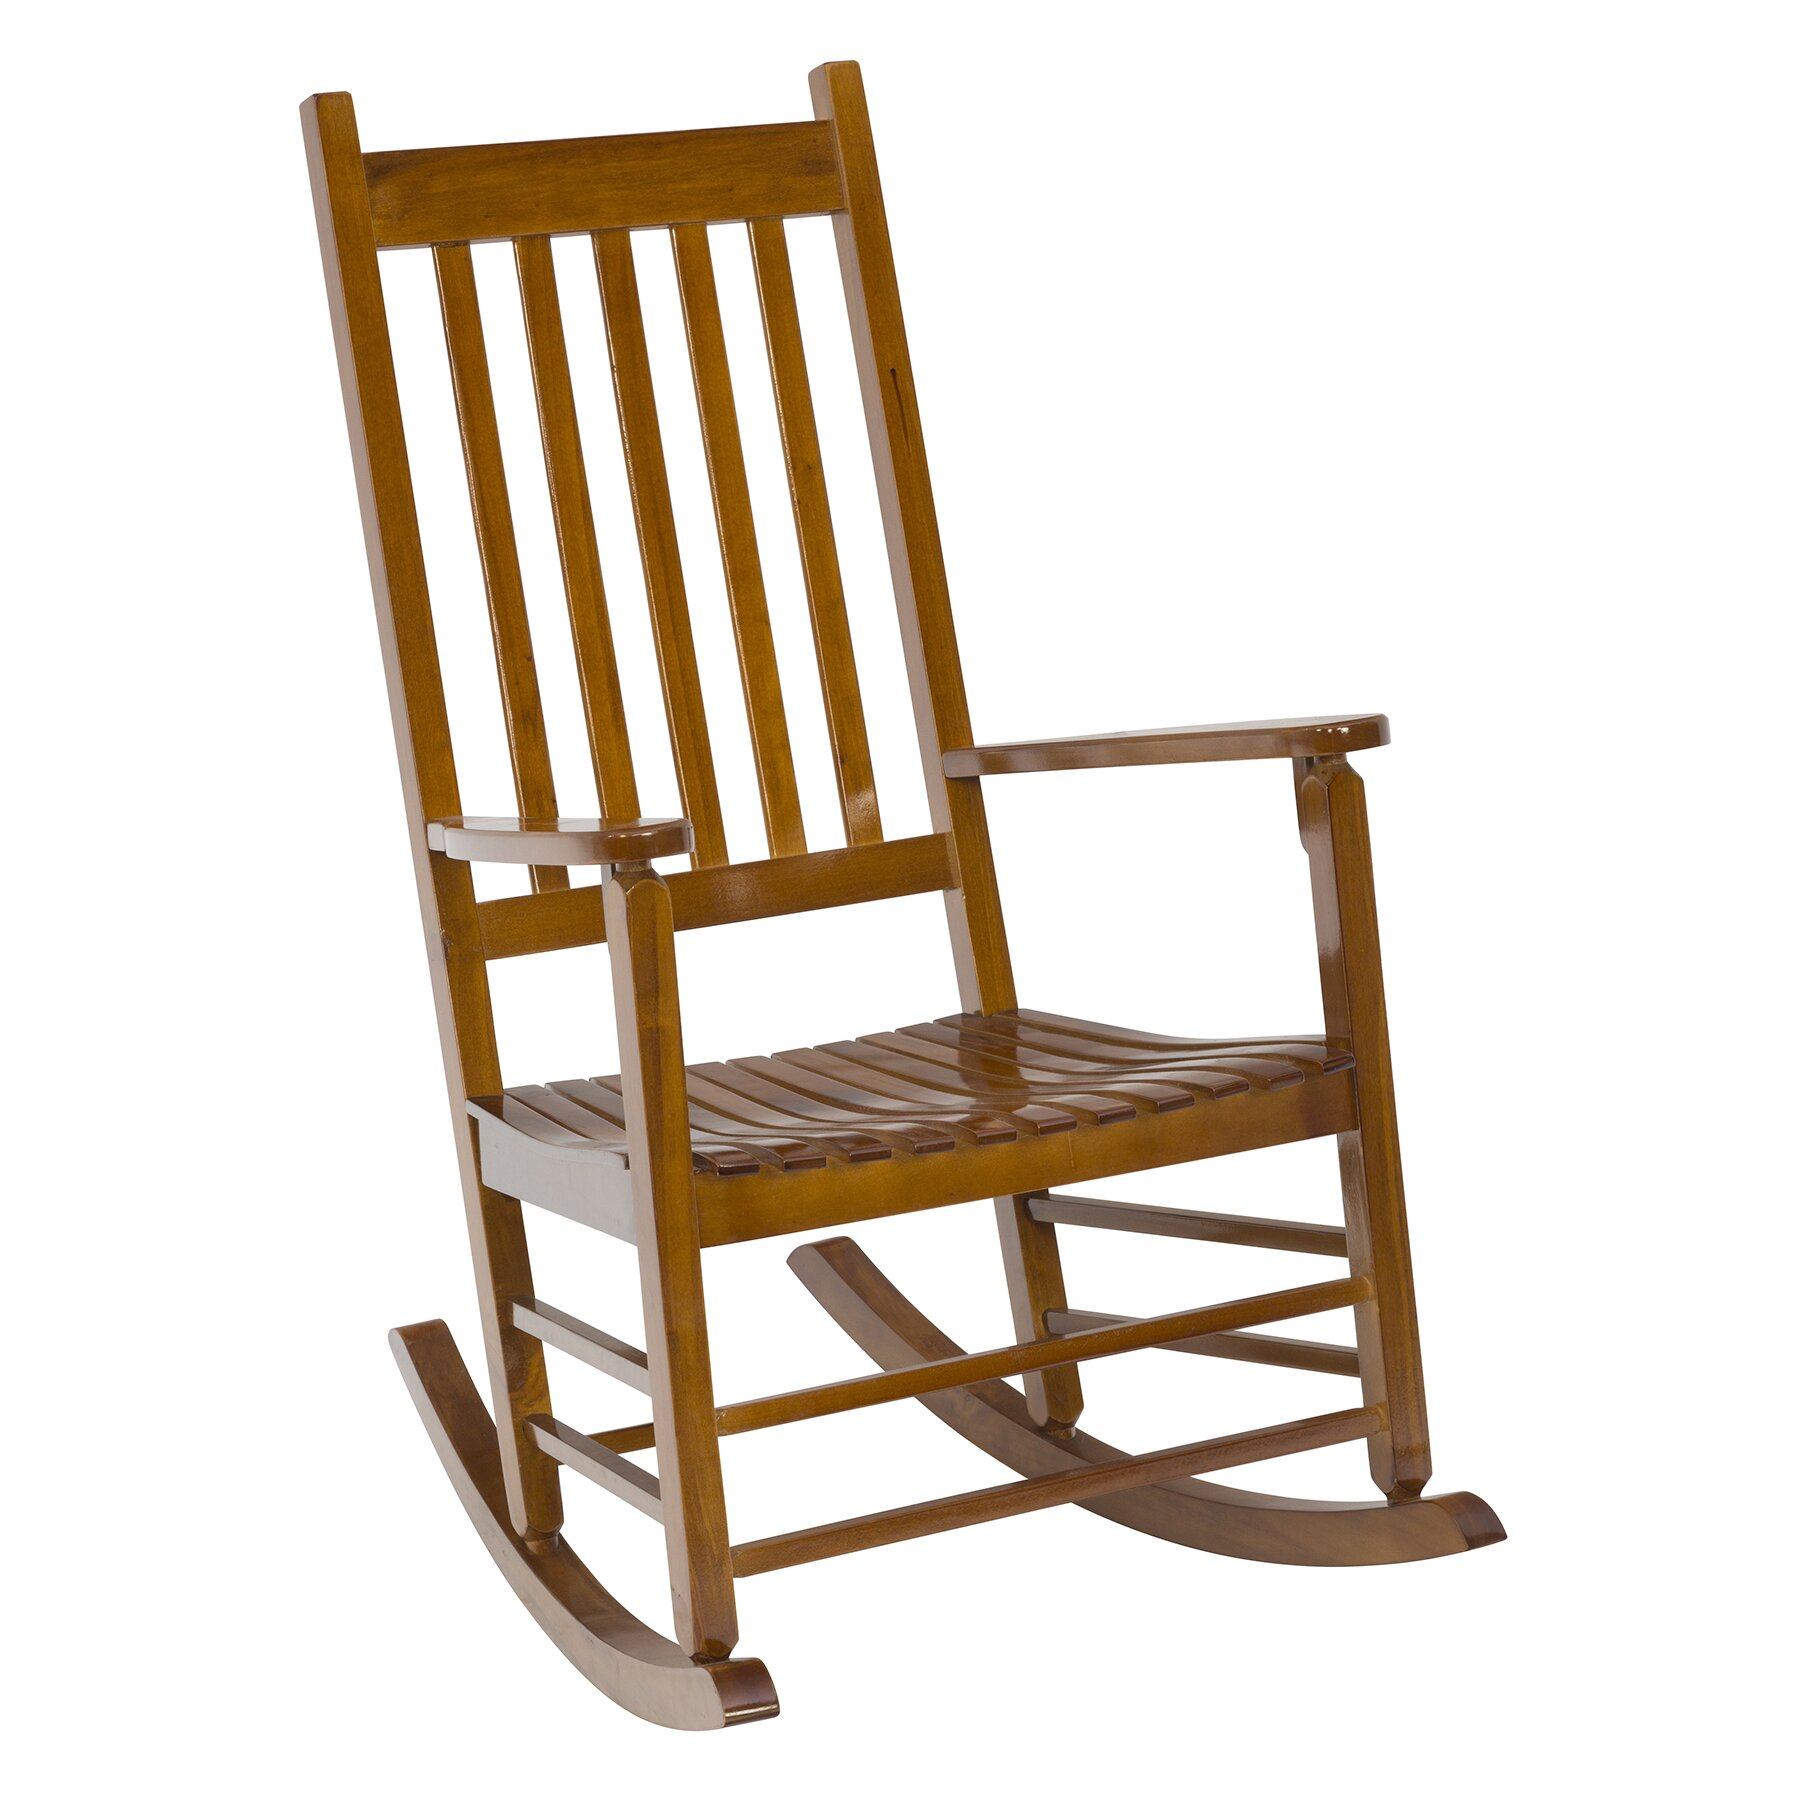 Outdoor Patio Furniture ... Patio Rocking Chairs Jack-Post SKU ...